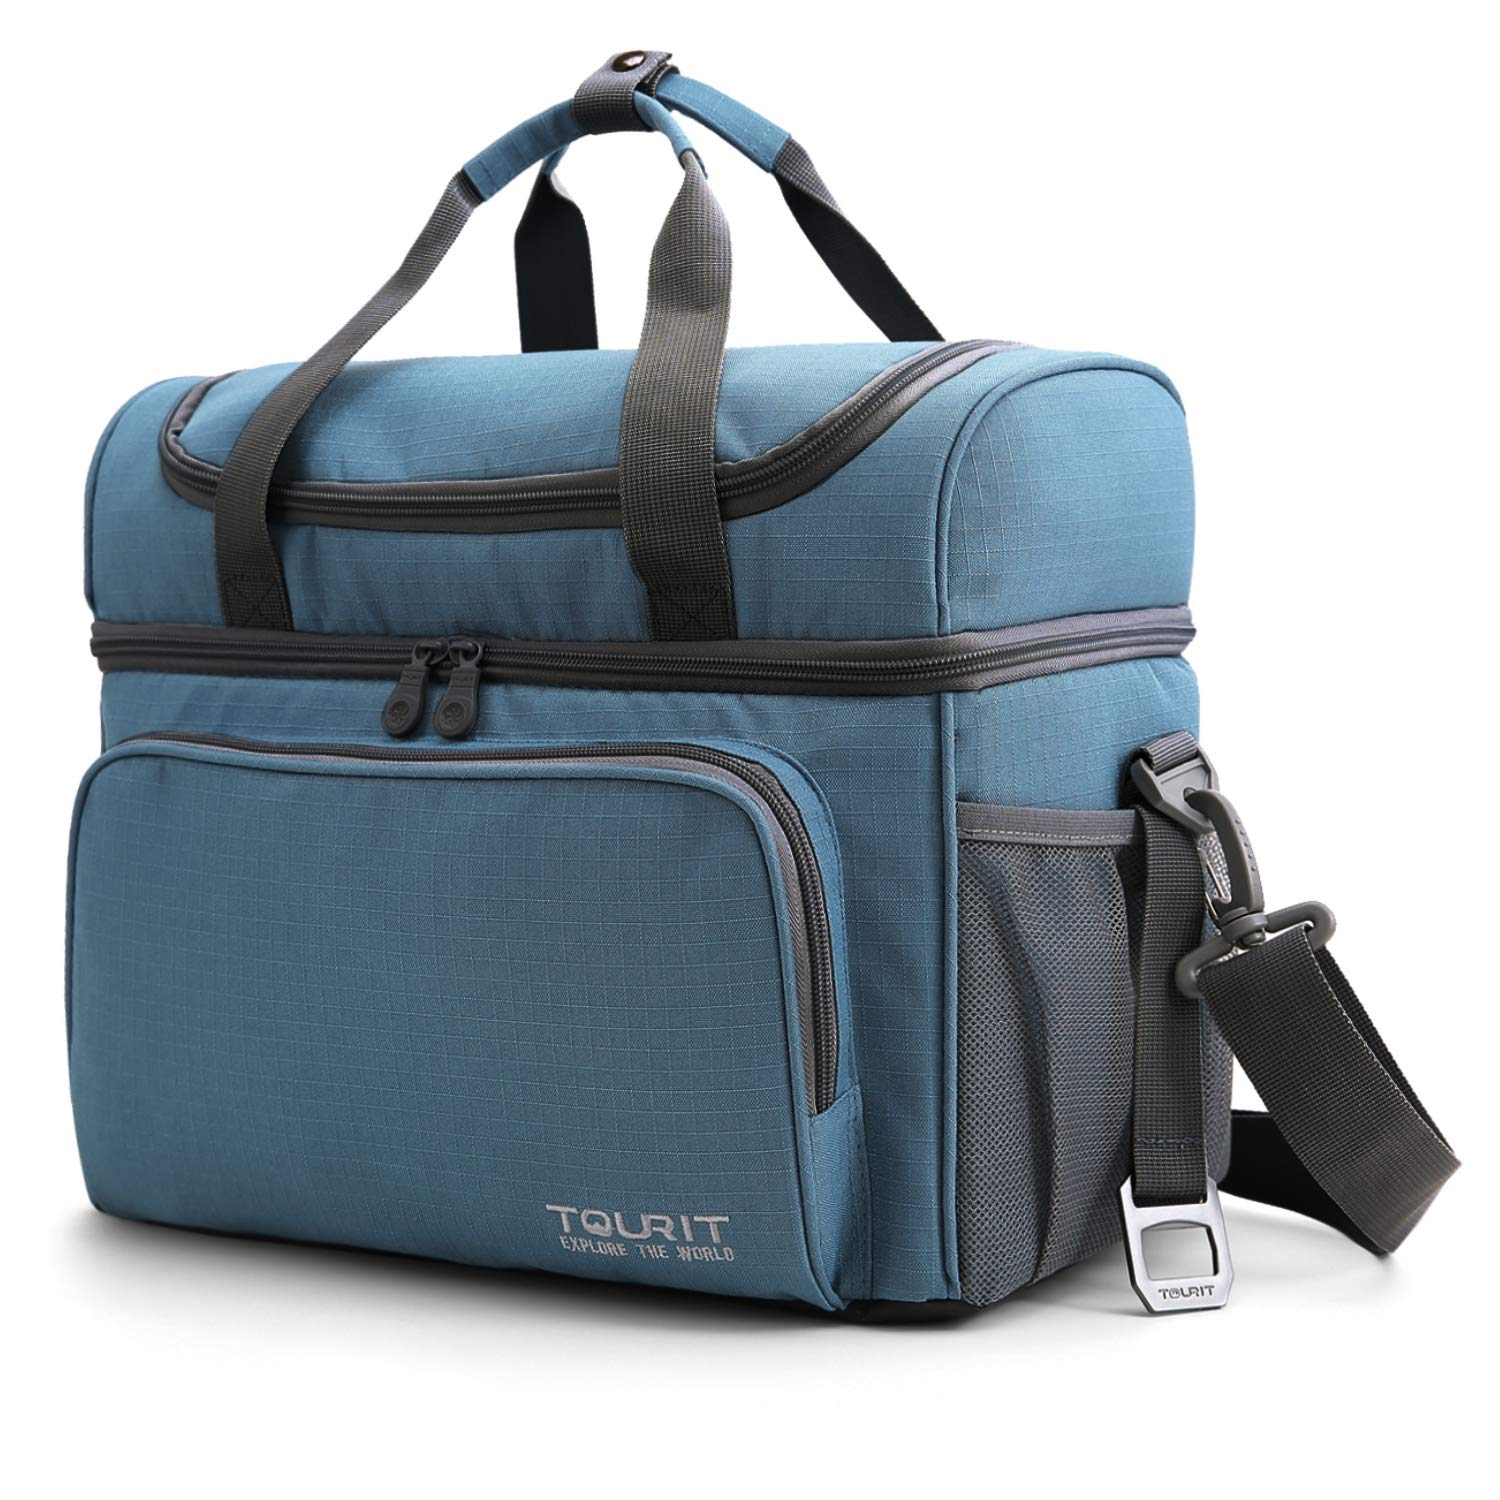 TOURIT Insulated Cooler Bag 15 Cans Large Lunch Bag Travel Cooler Tote 22L Soft Sided Cooler Bag for Men Women to Picnic, Camping, Beach, Work by TOURIT